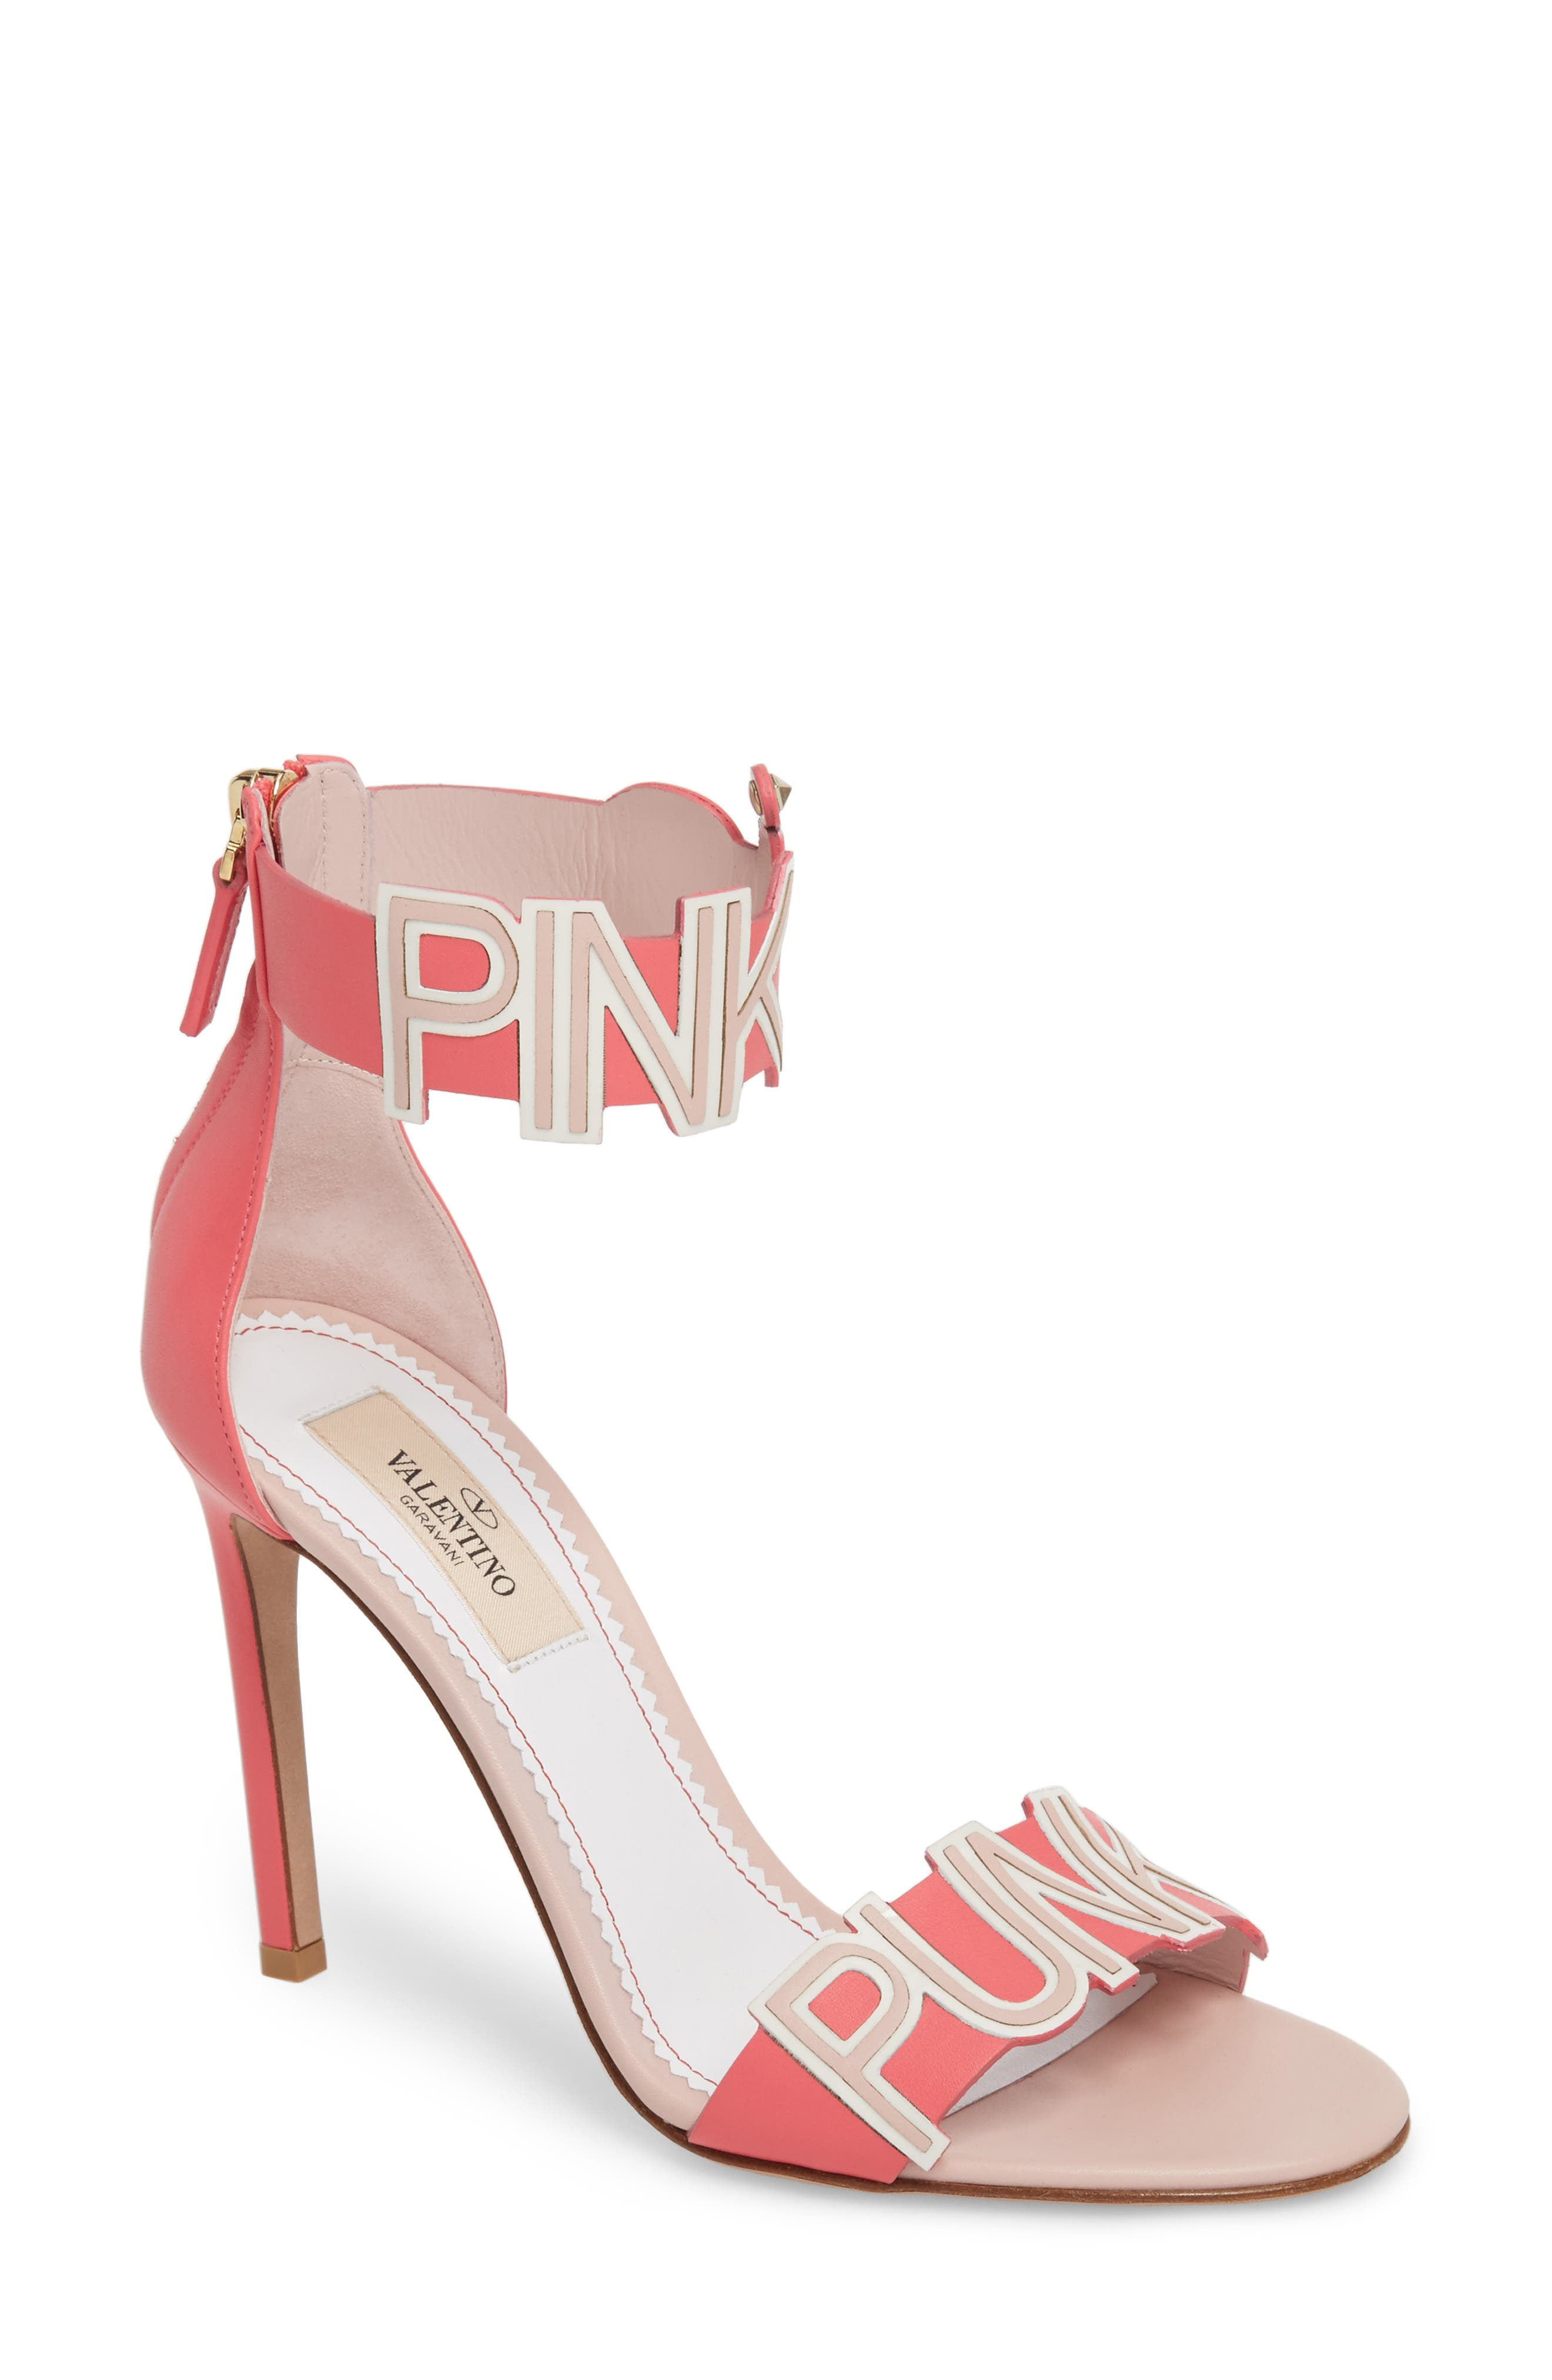 Pink Is Punk Ankle Strap Sandal,                         Main,                         color, Shadow Pink